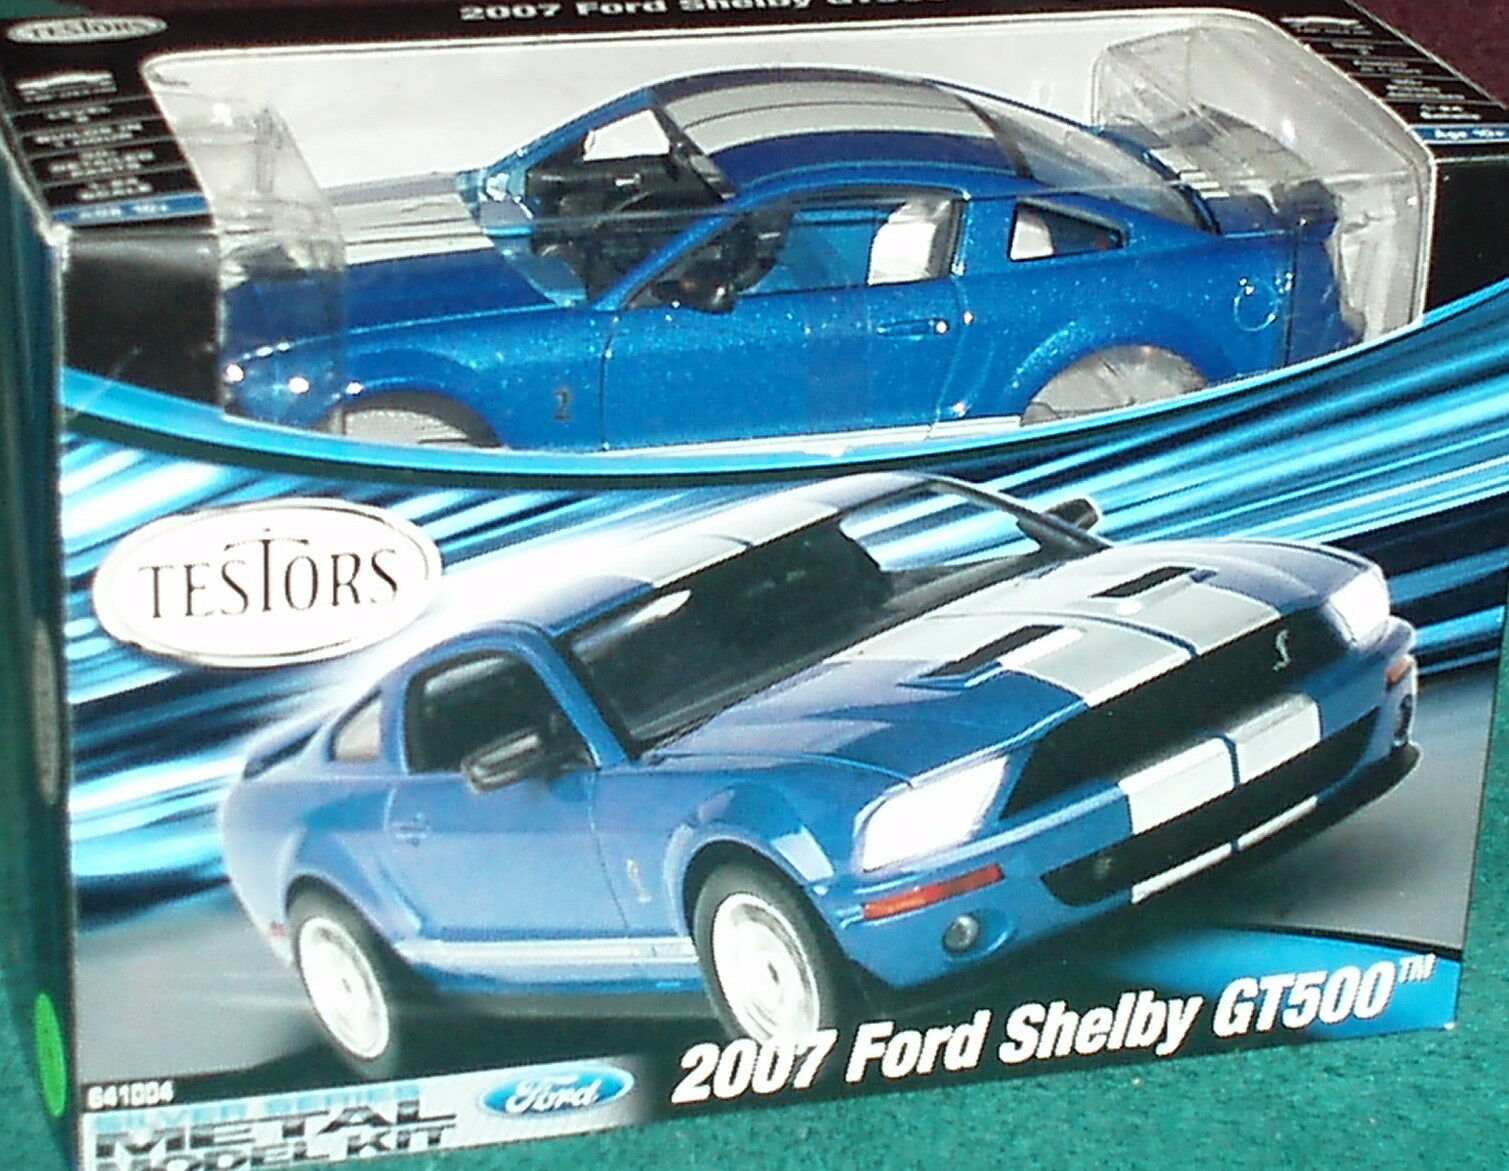 TESTORS 2007 FORD MUSTANG SHELBY GT500 ASSEMBLY KIT 1 24 SKILL LEVEL 2 blueE WHT